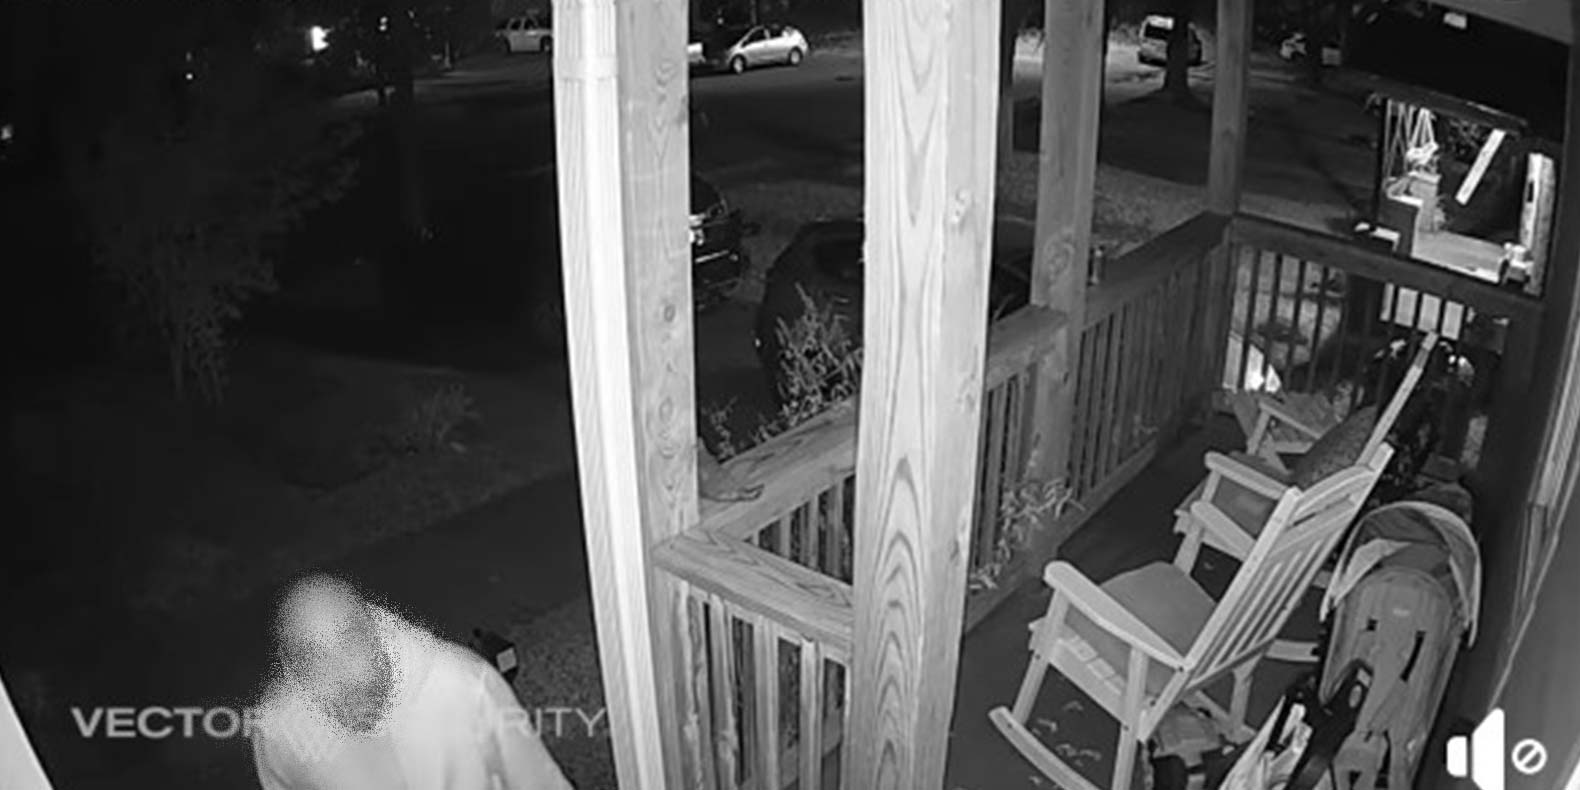 Security Camera App Notifies Customer of Attempted Burglary